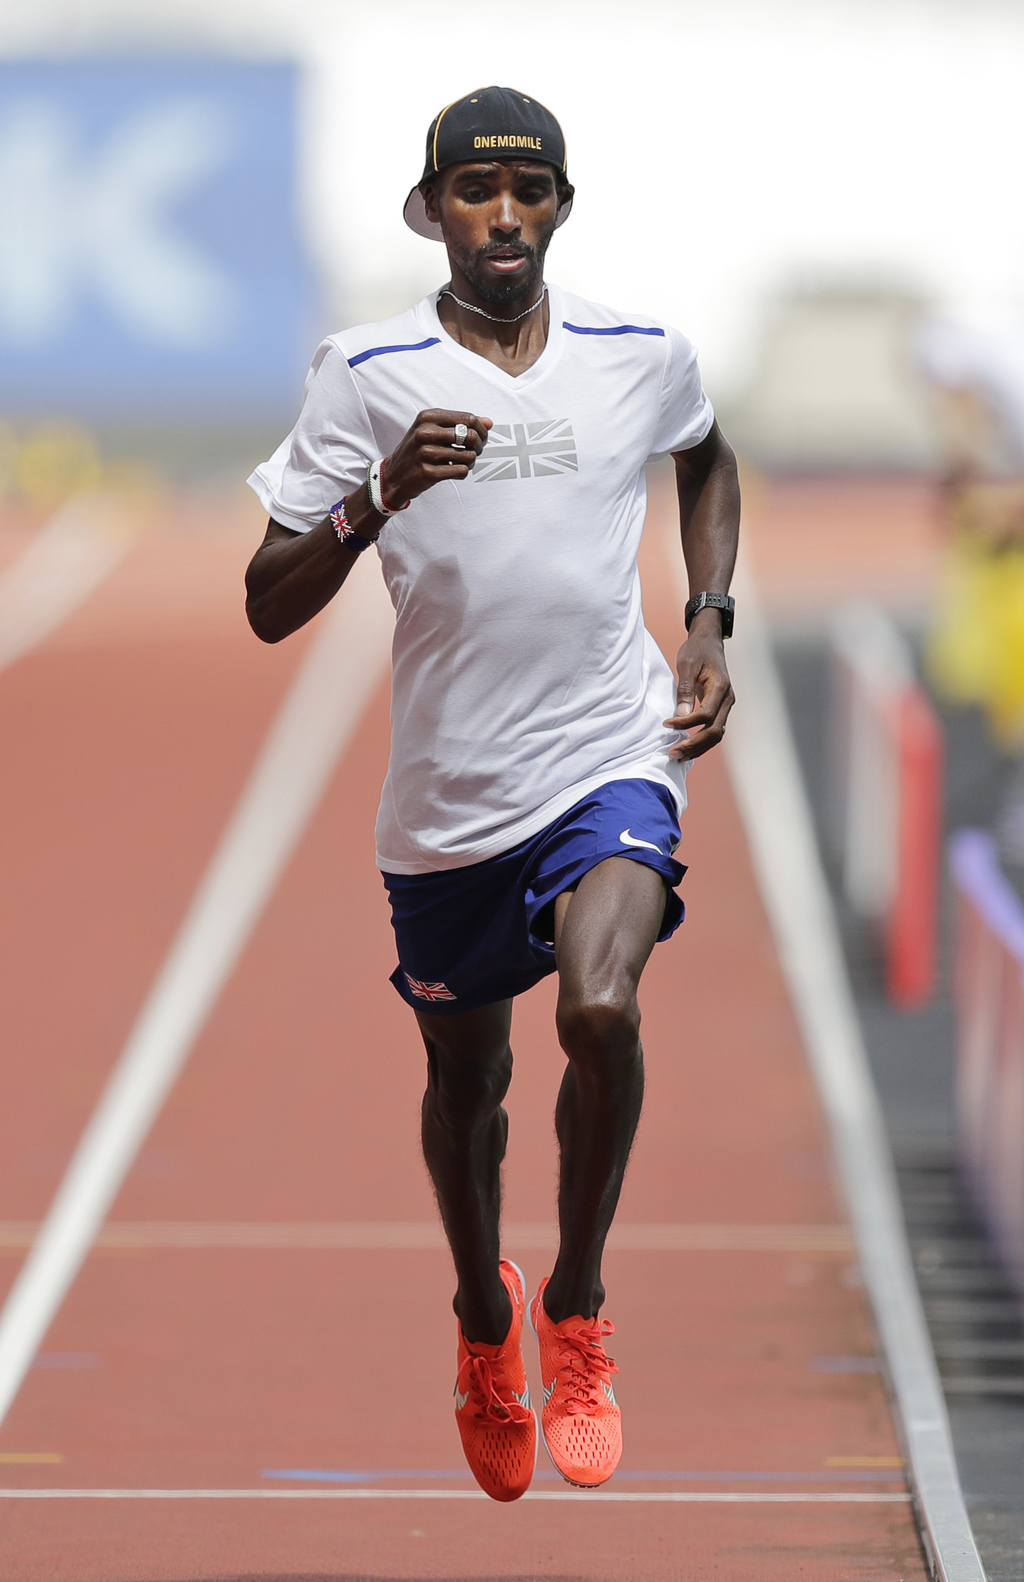 Britain's Mo Farah runs during a training session before the World Athletics Championships in London Thursday, Aug. 3, 2017. (AP Photo/Tim Ireland)